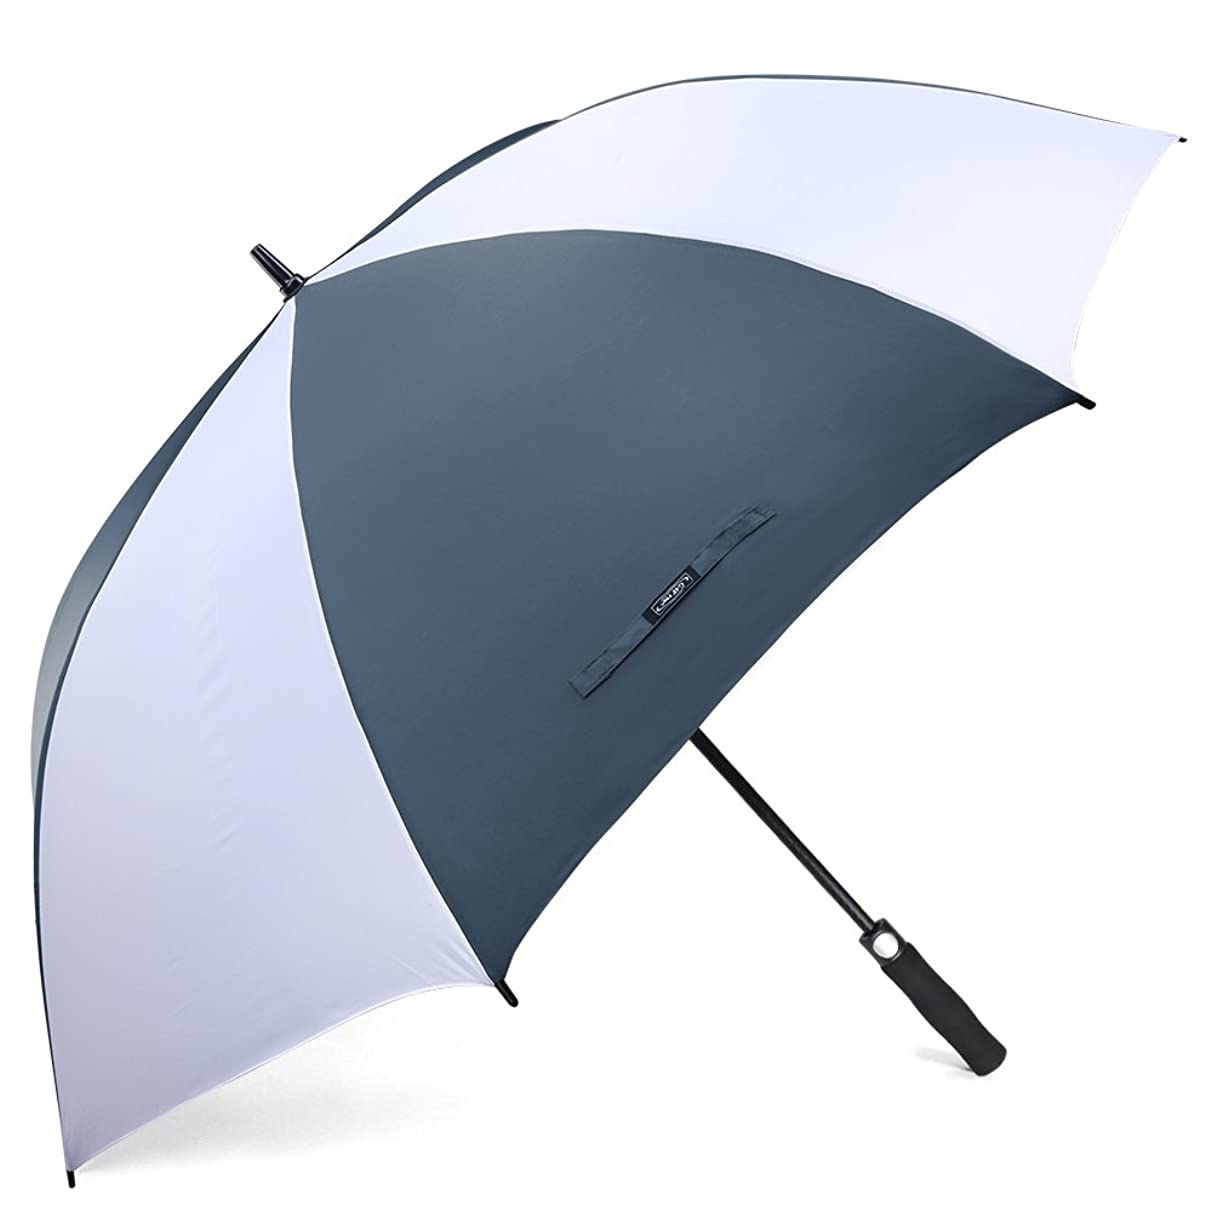 G4Free 62/68Inch Automatic Open Golf Umbrella Extra Large Windproof Oversize Waterproof Stick Umbrellas for Men Women